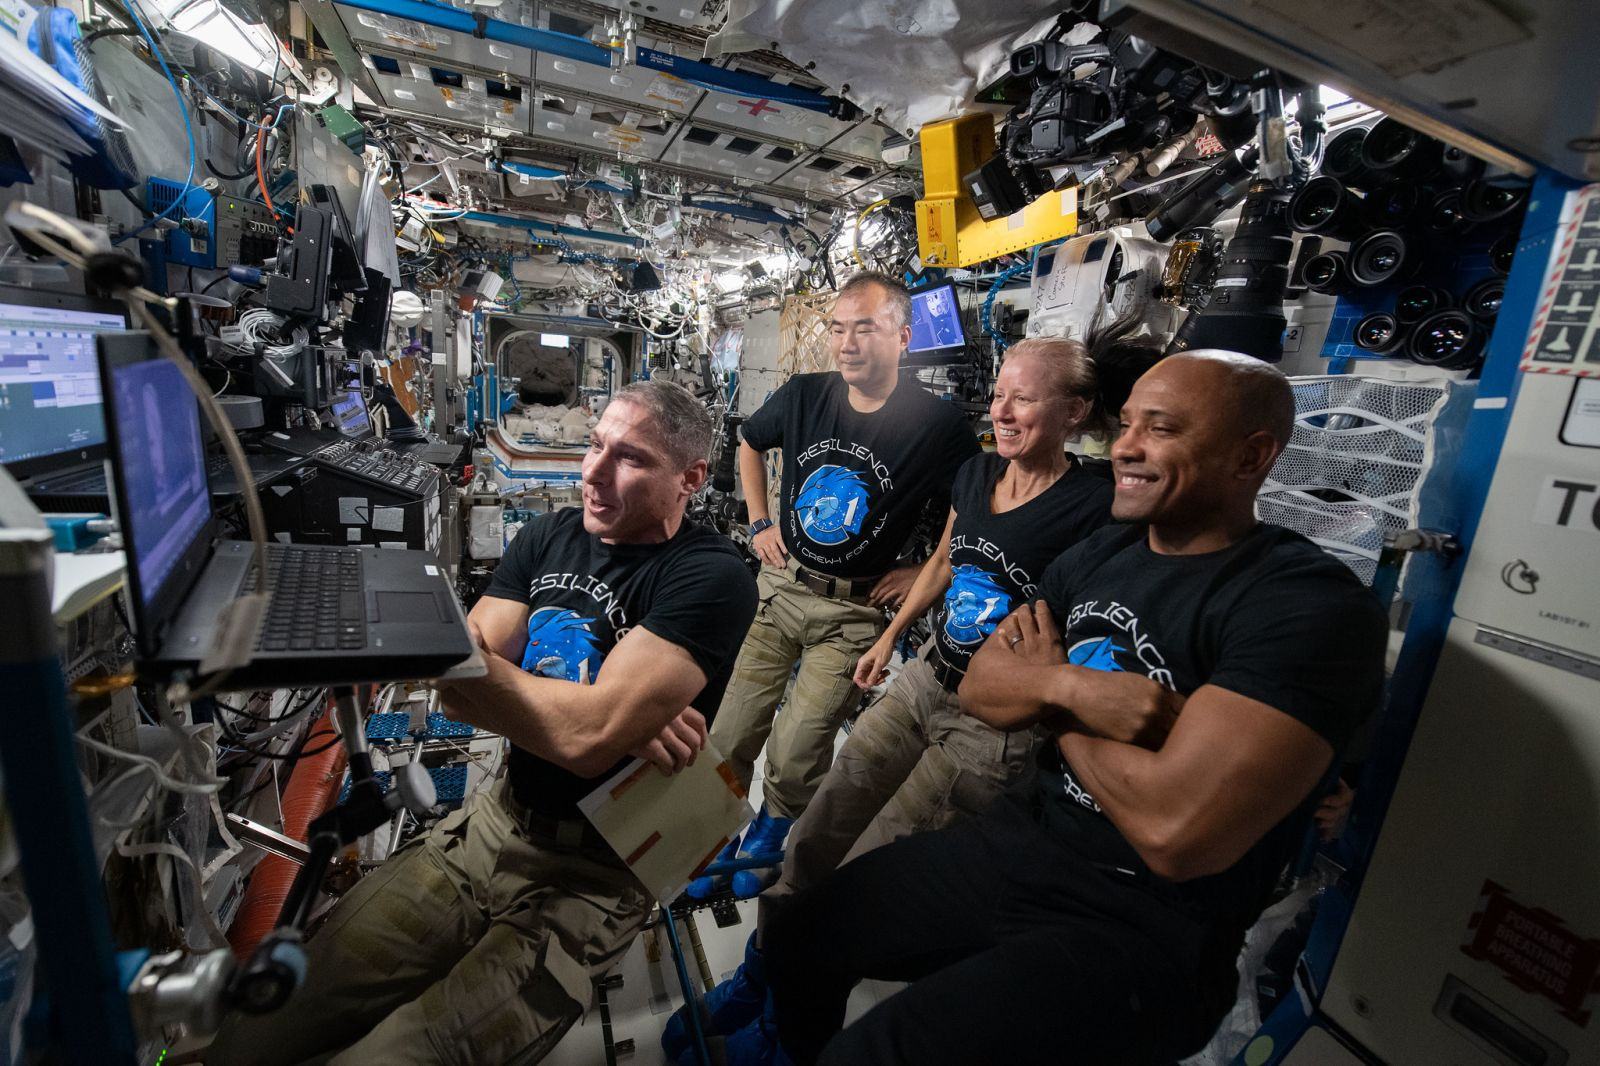 The Crew Dragon Resilience crew participate in a video conference in February 2021 with former NASA astronaut Edward Gibson, who was one of the three Skylab-4 astronauts. From left to right: Mike Hopkins, Soichi Noguchi, Shannon Walker and Victor Glover. Credit: NASA